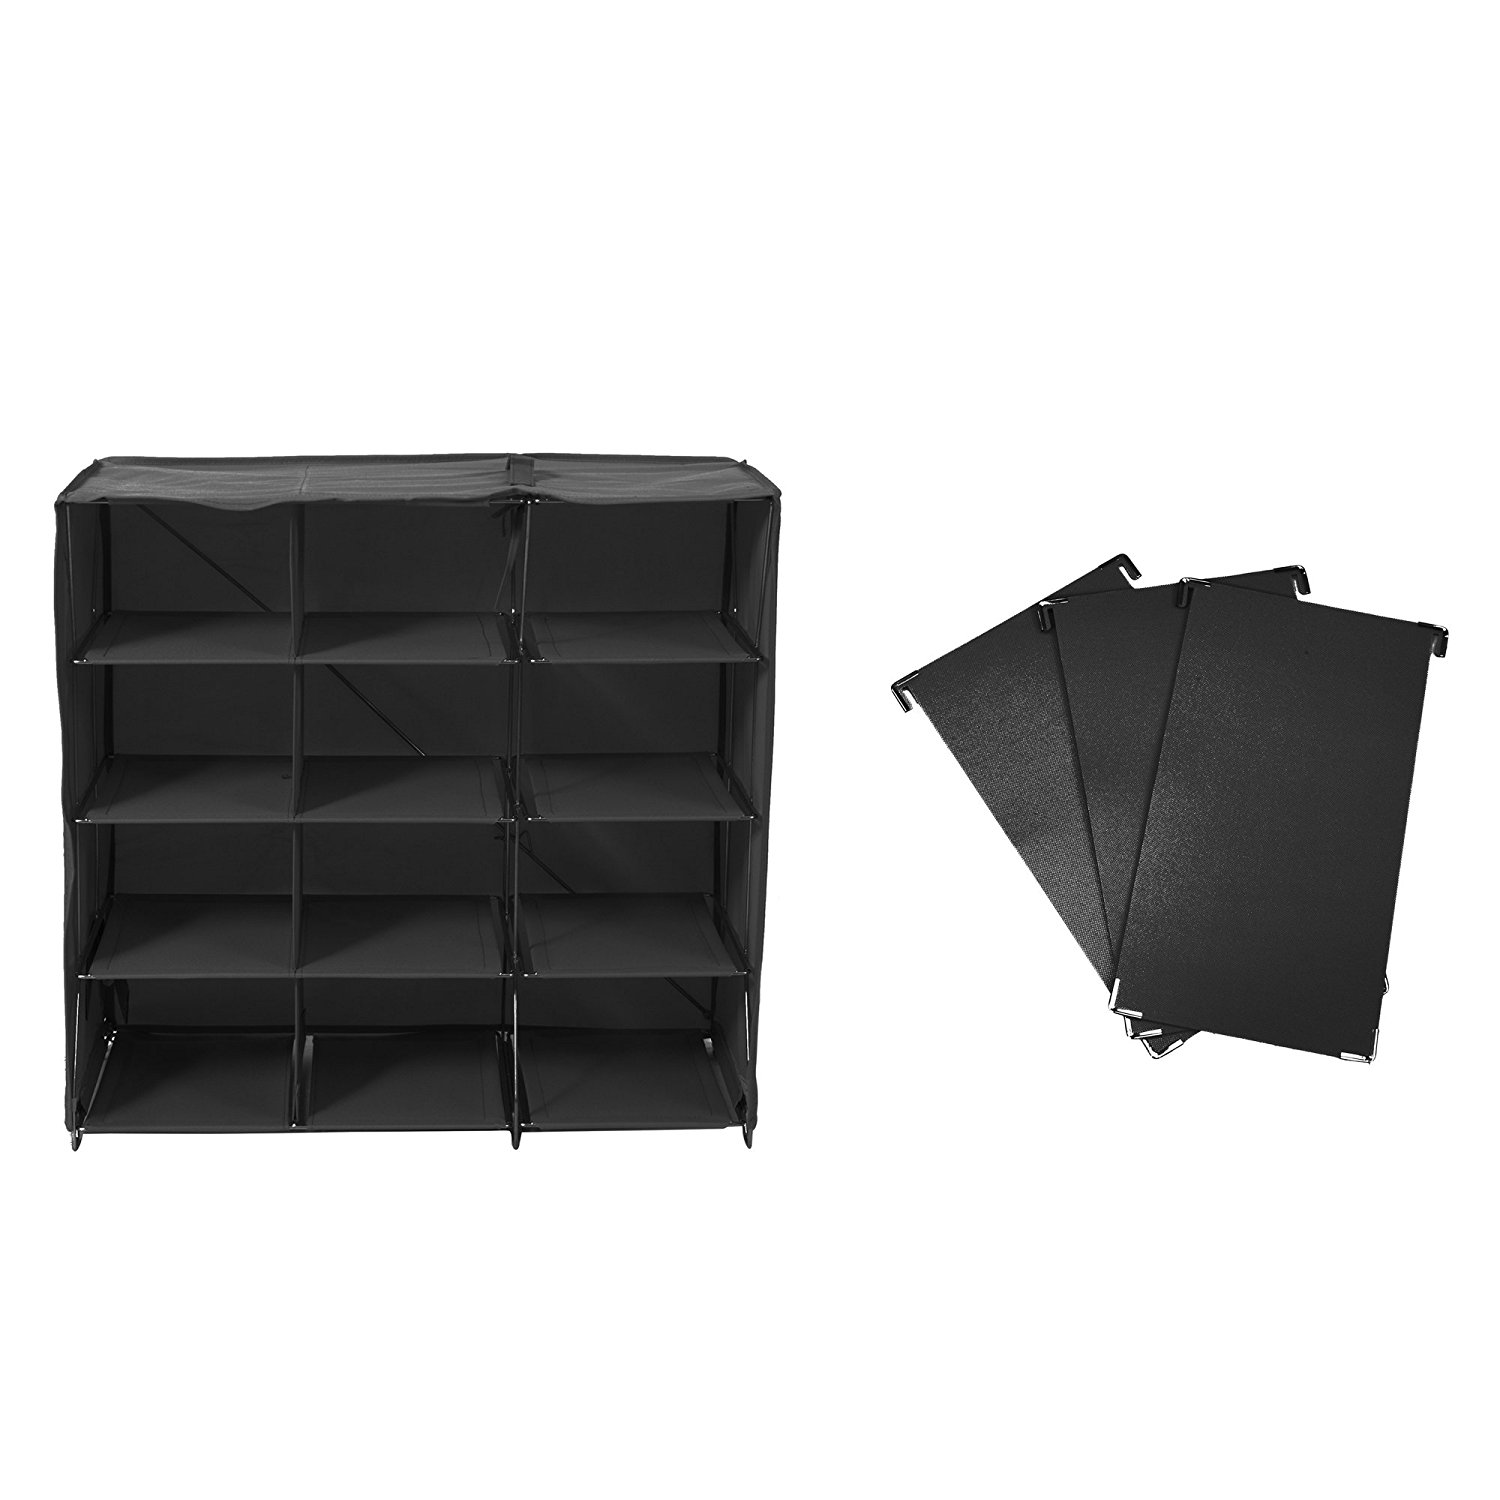 Origami - folding shelves: Wish I had these for my business ... | 1500x1500